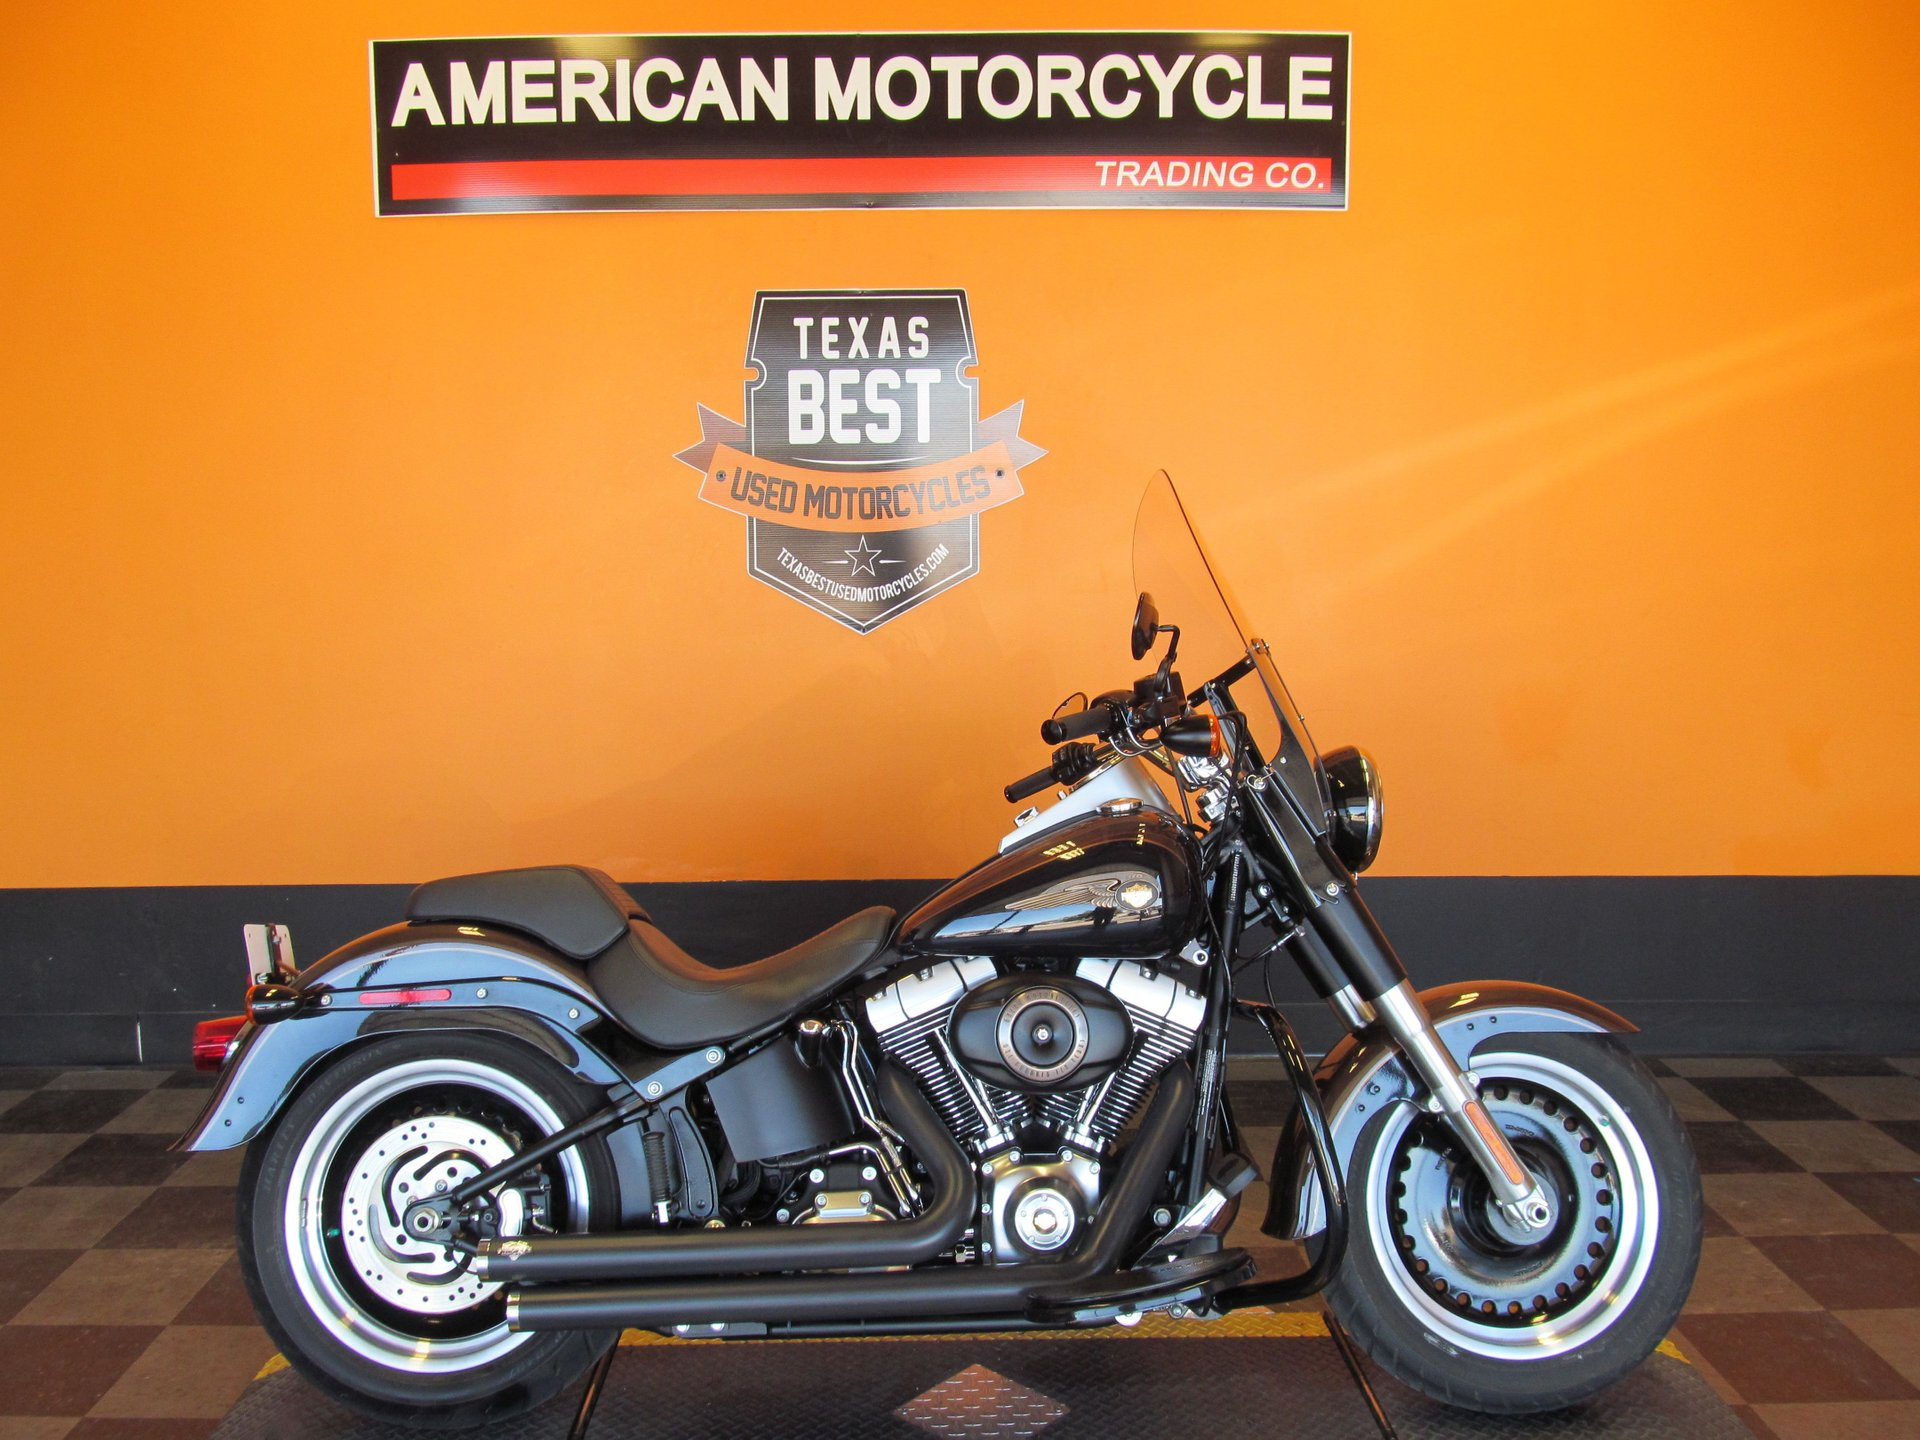 2013 harley davidson softail fat boy lo flstb 110th anniversary